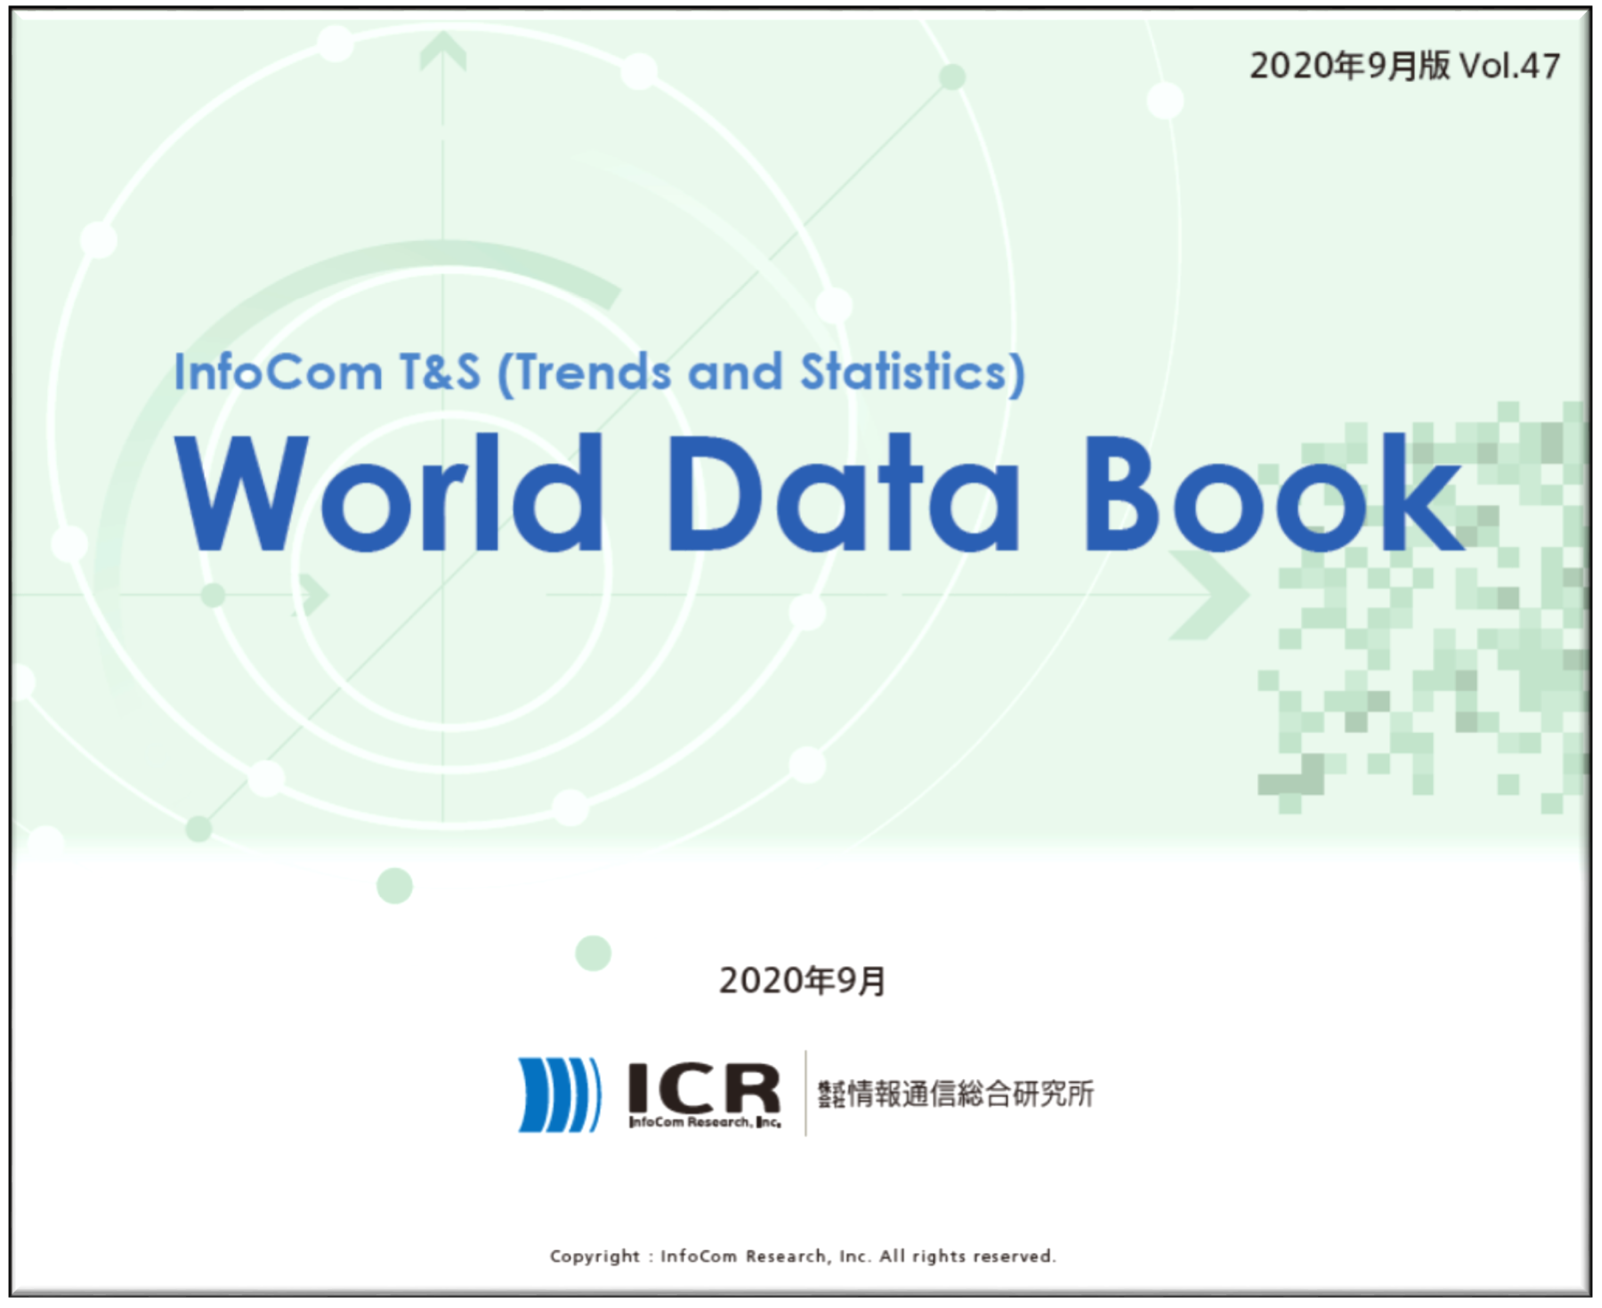 InfoCom T&S World Data Book